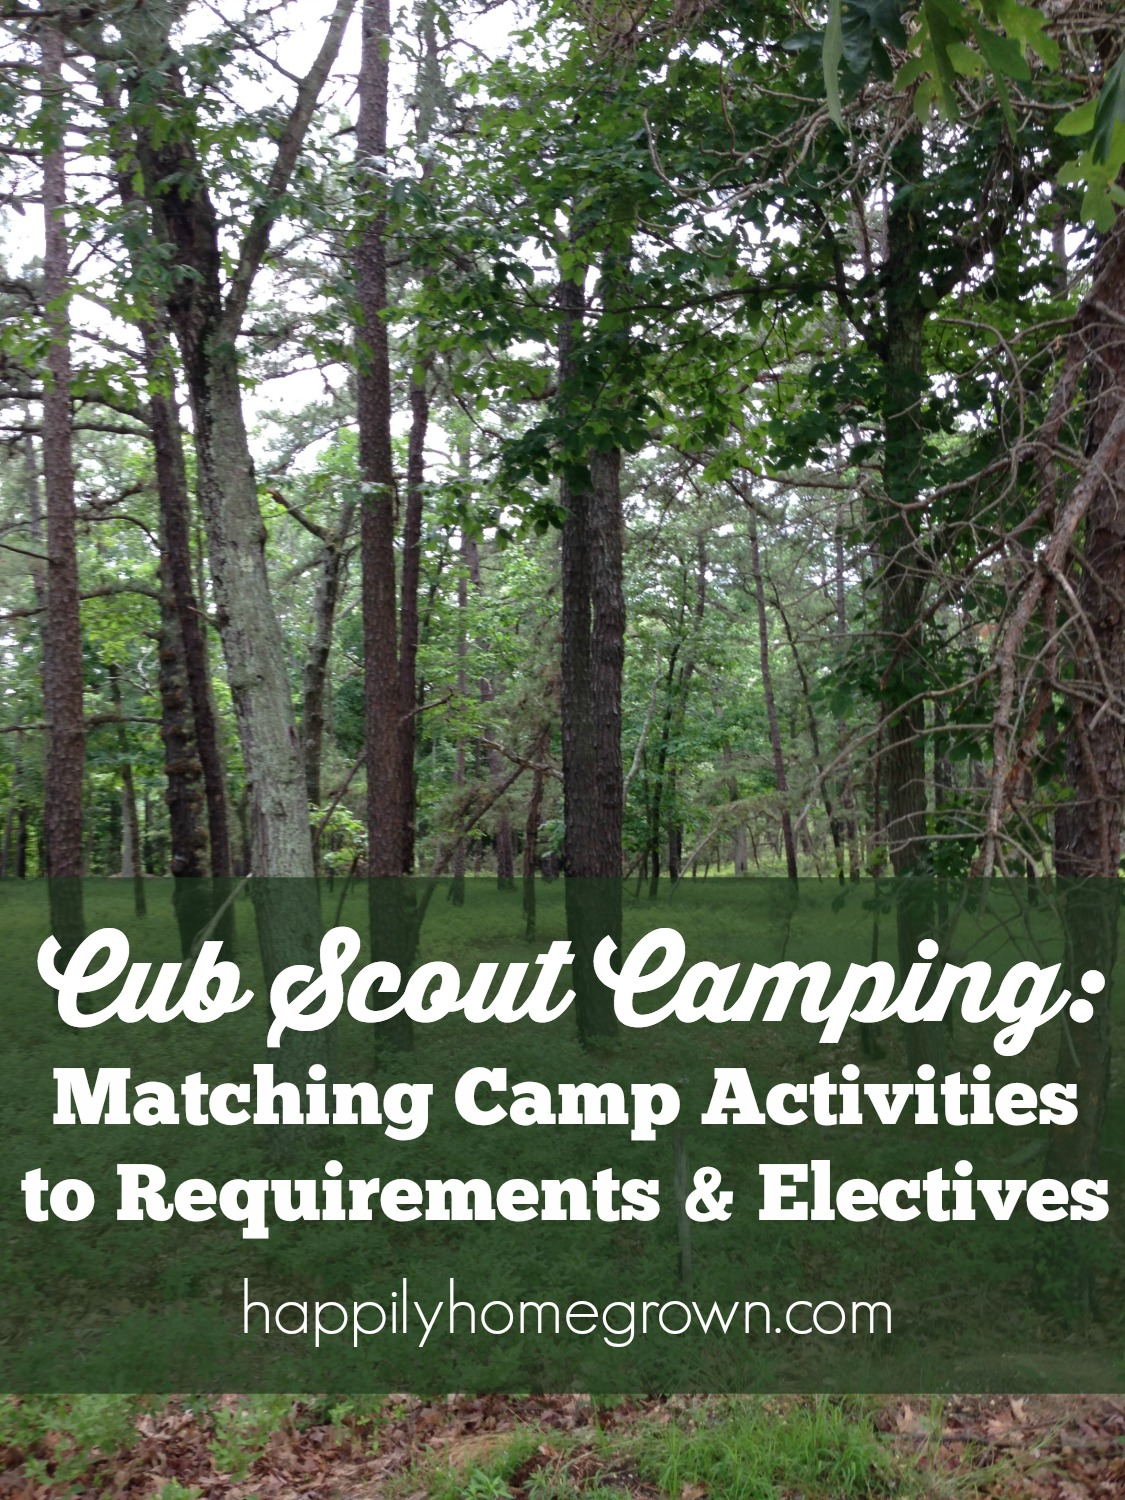 Camping with your Cub Scout pack is fun, but its a lot of work to make sure the scouts are meeting their requirements. Here's a cheat sheet to make it a bit easier for you.